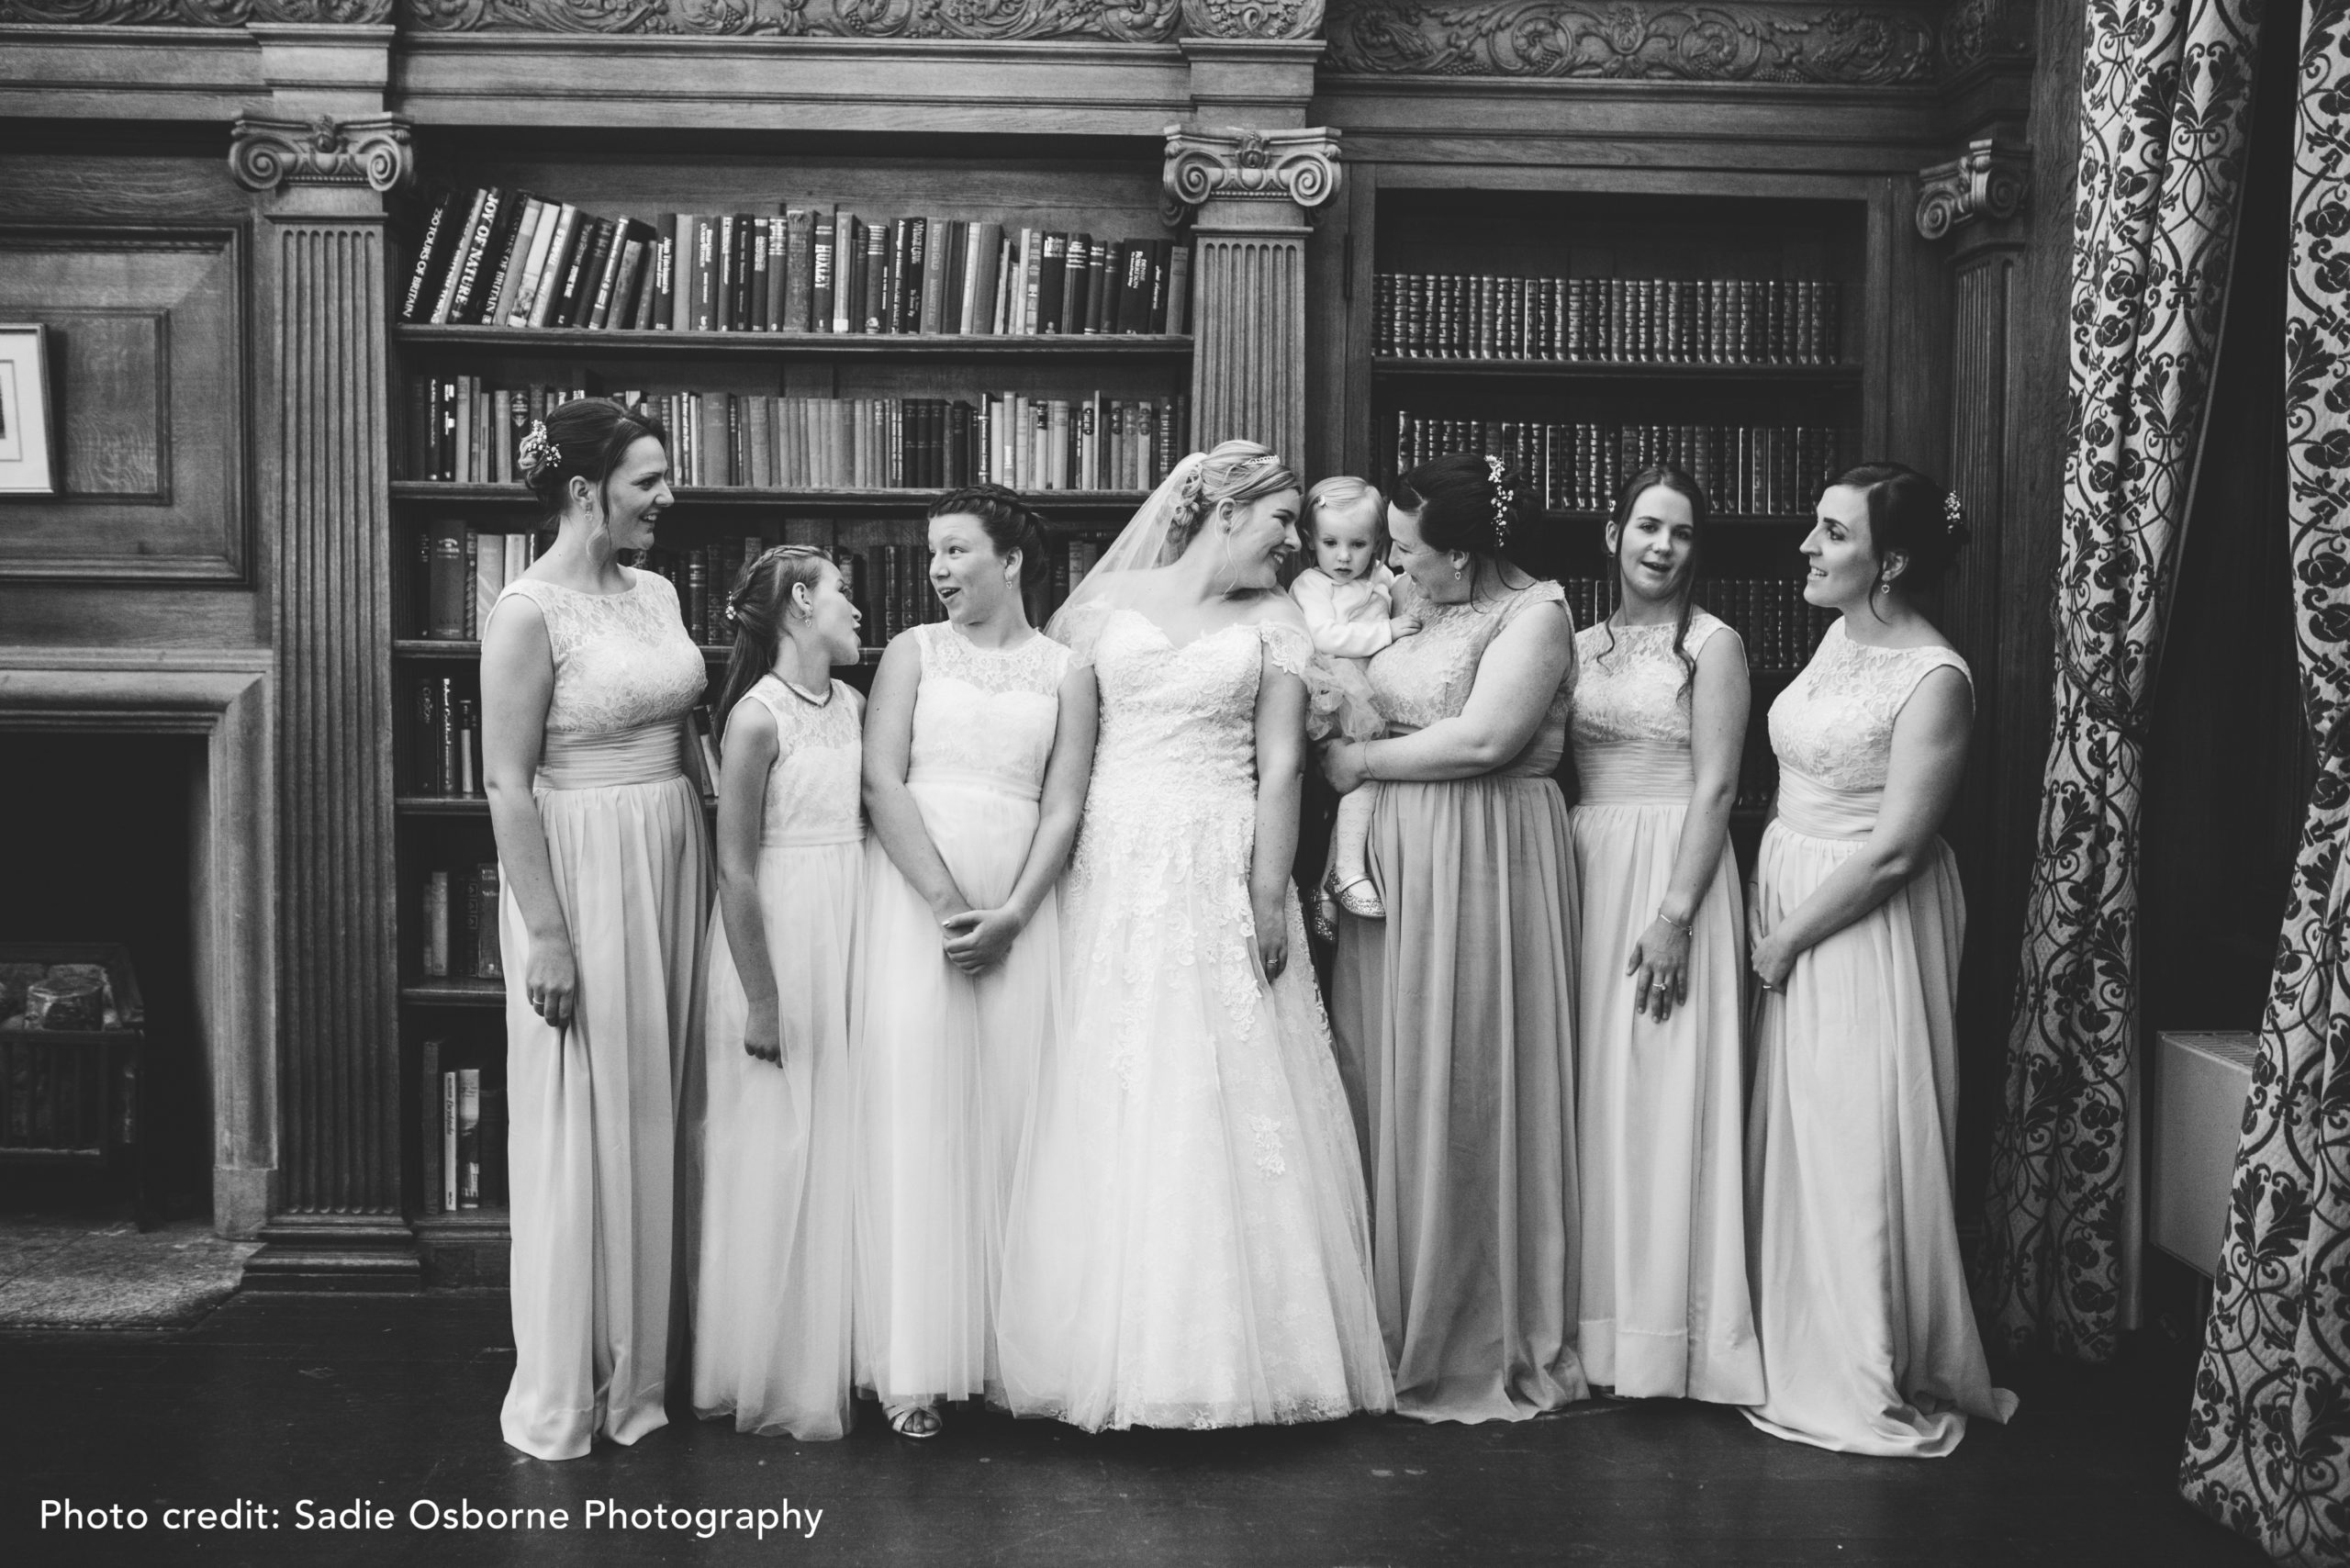 Bridal party lined up in front of bookshelves in the Old Library